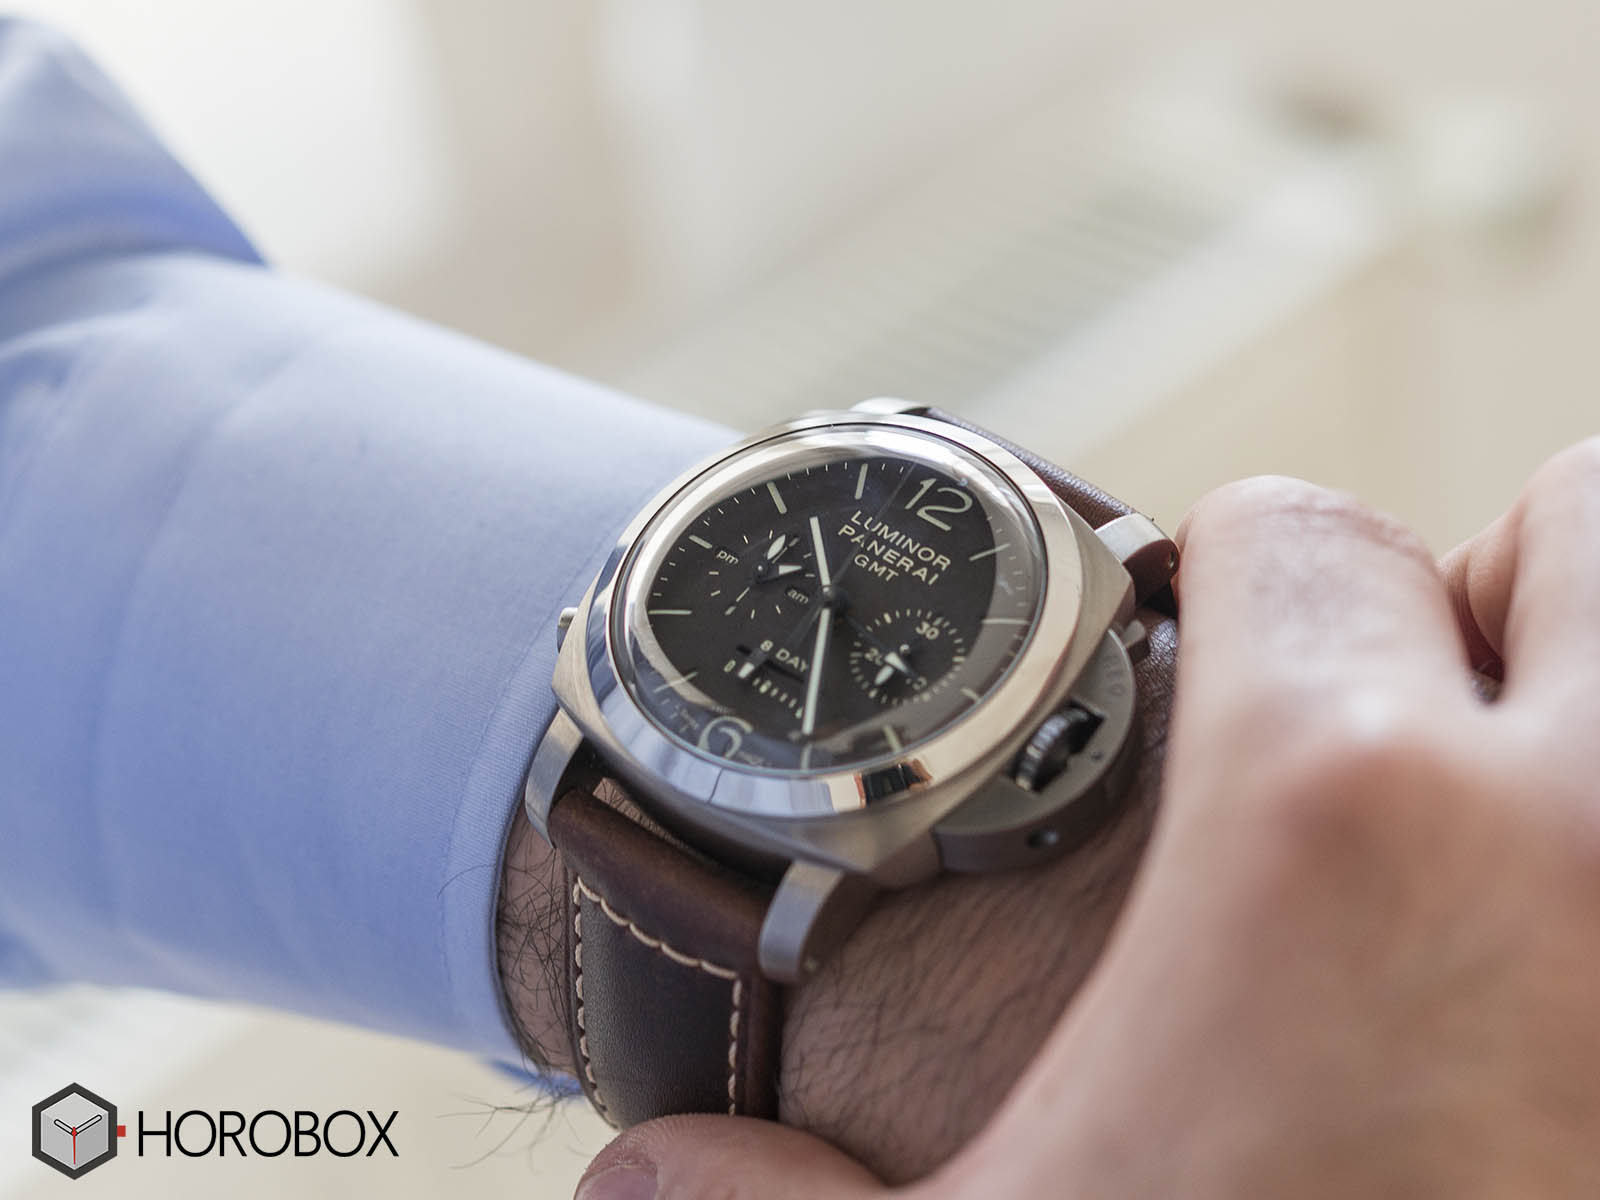 Officine-panerai-power-reserve-13.jpg